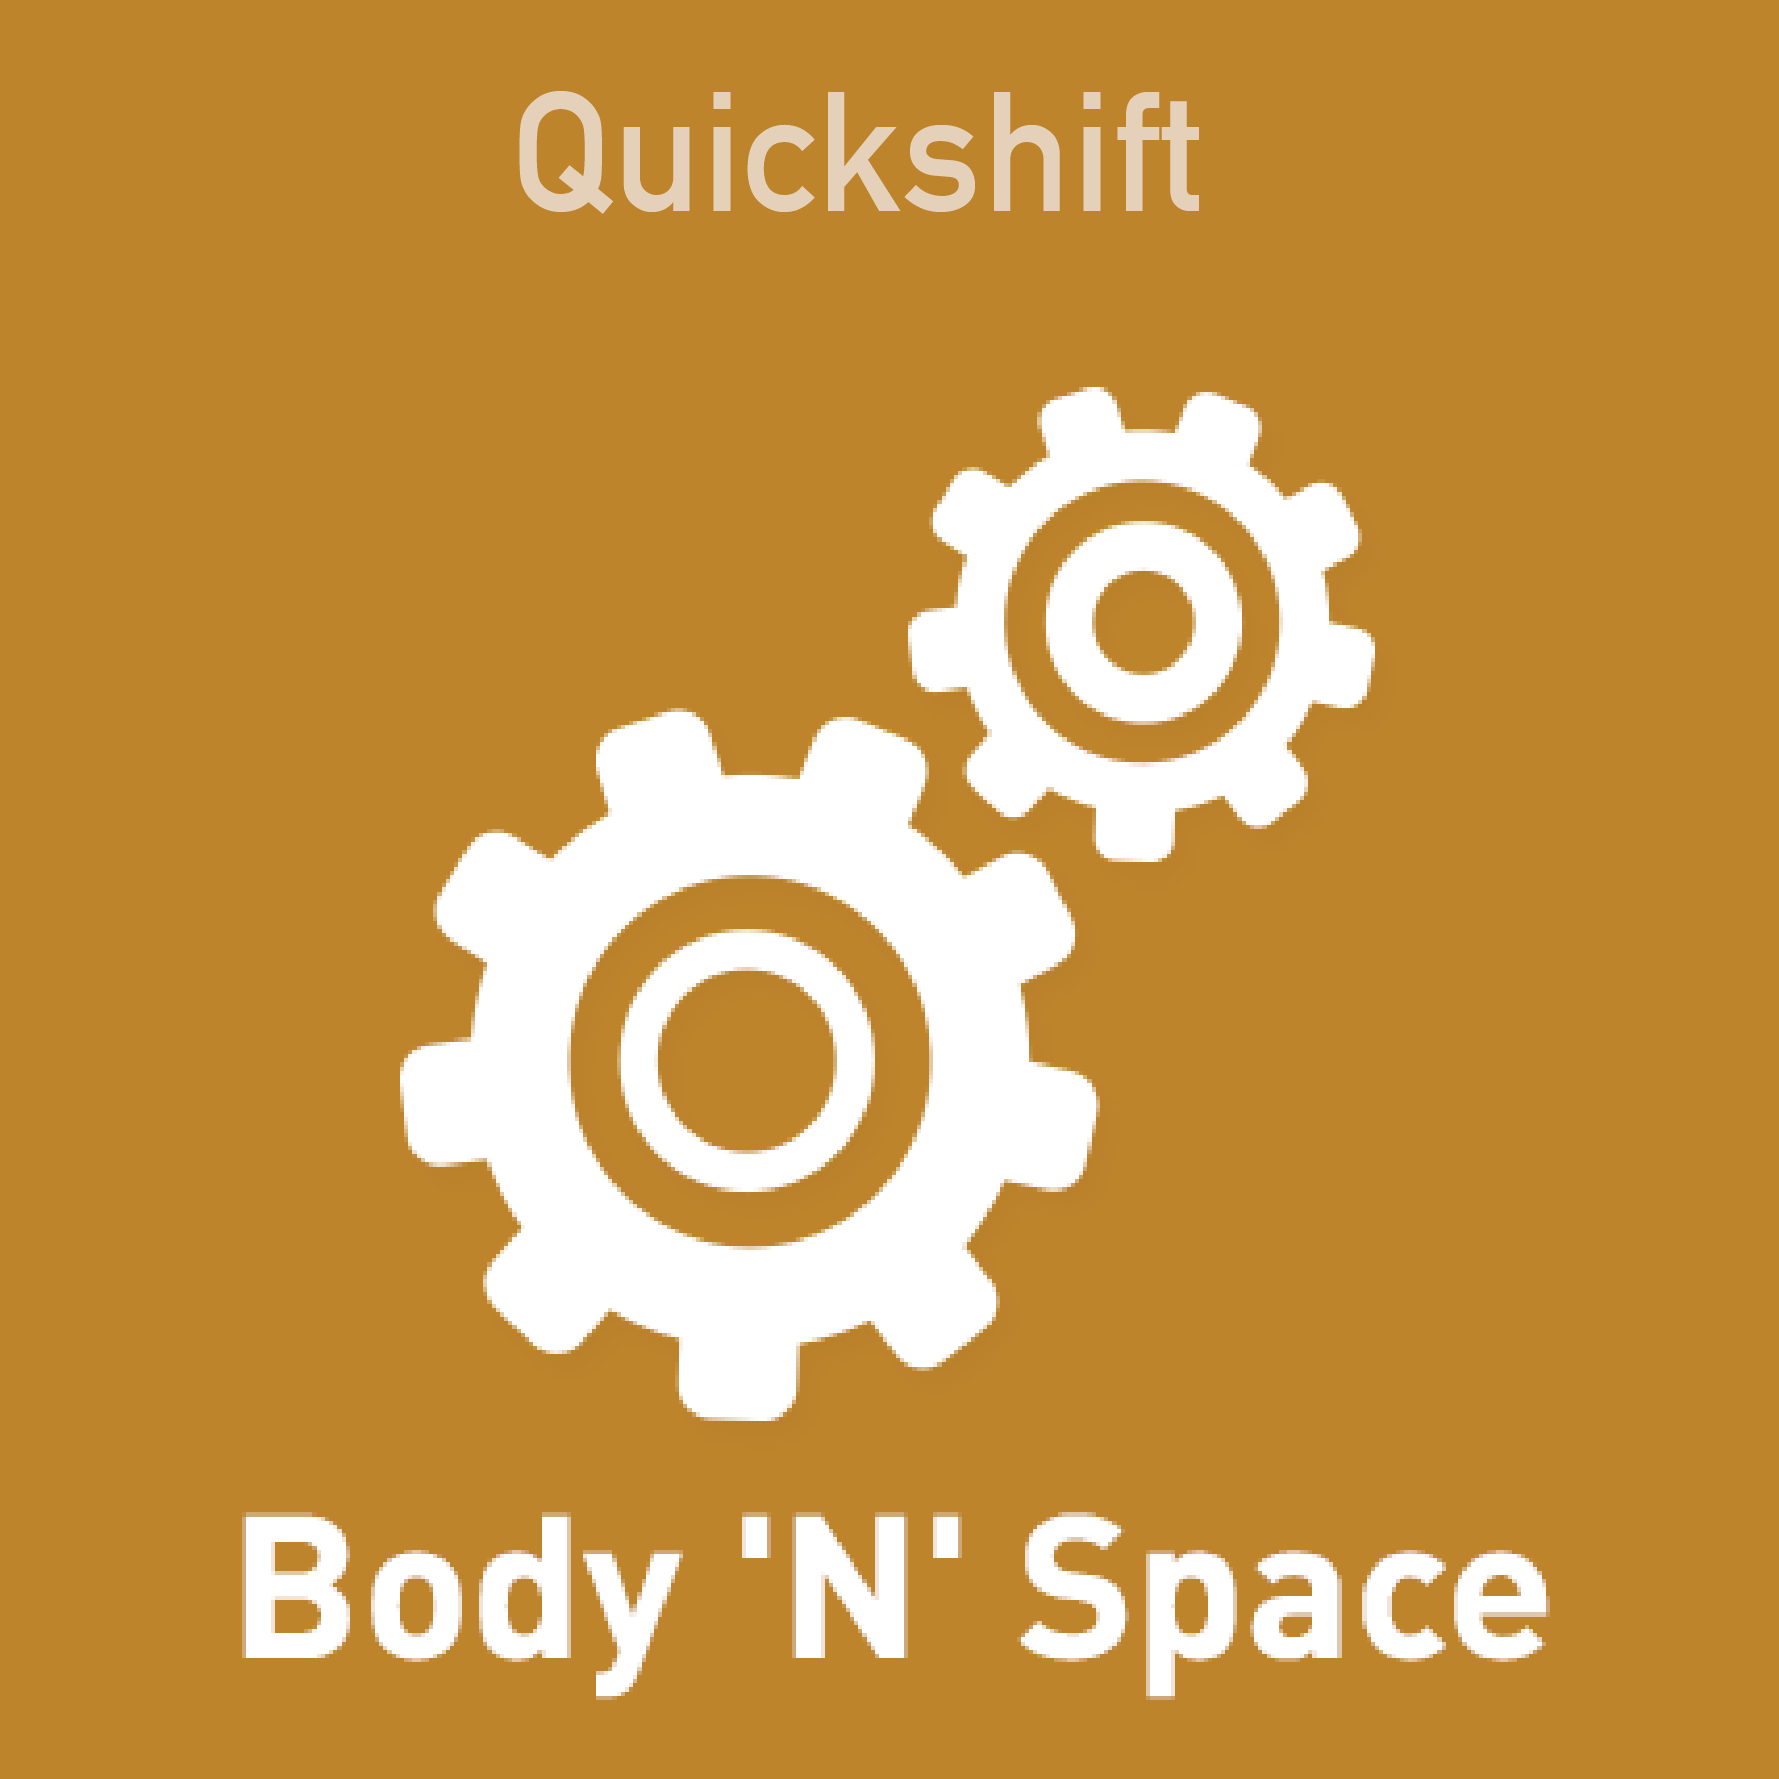 Quickshift - Sensory Enhancement (Body 'N' Space)